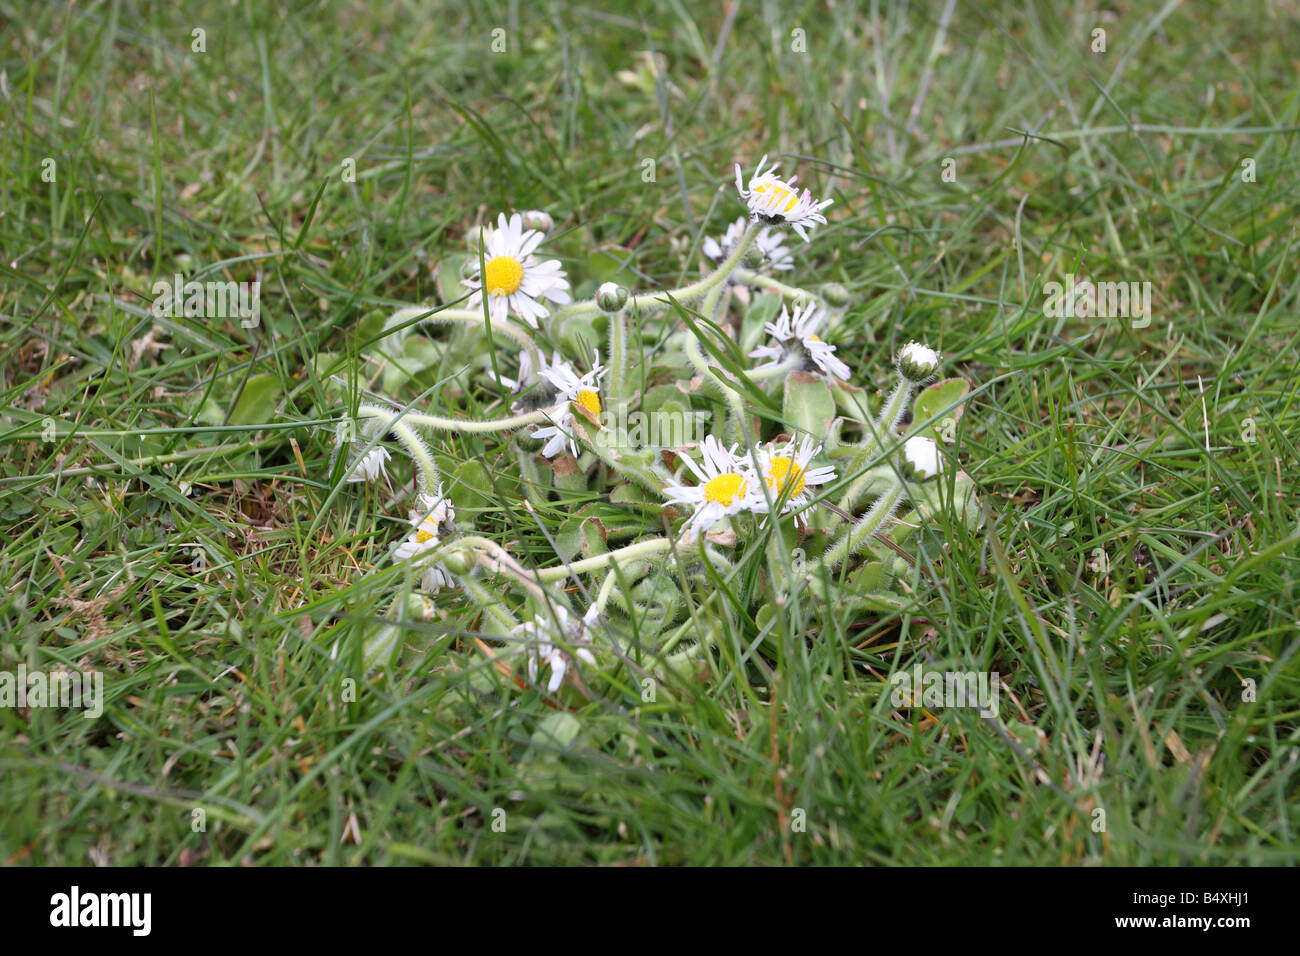 DAISY SHOWING EFFECT OF WEED AND FEED TREATMENT ON LAWN - Stock Image